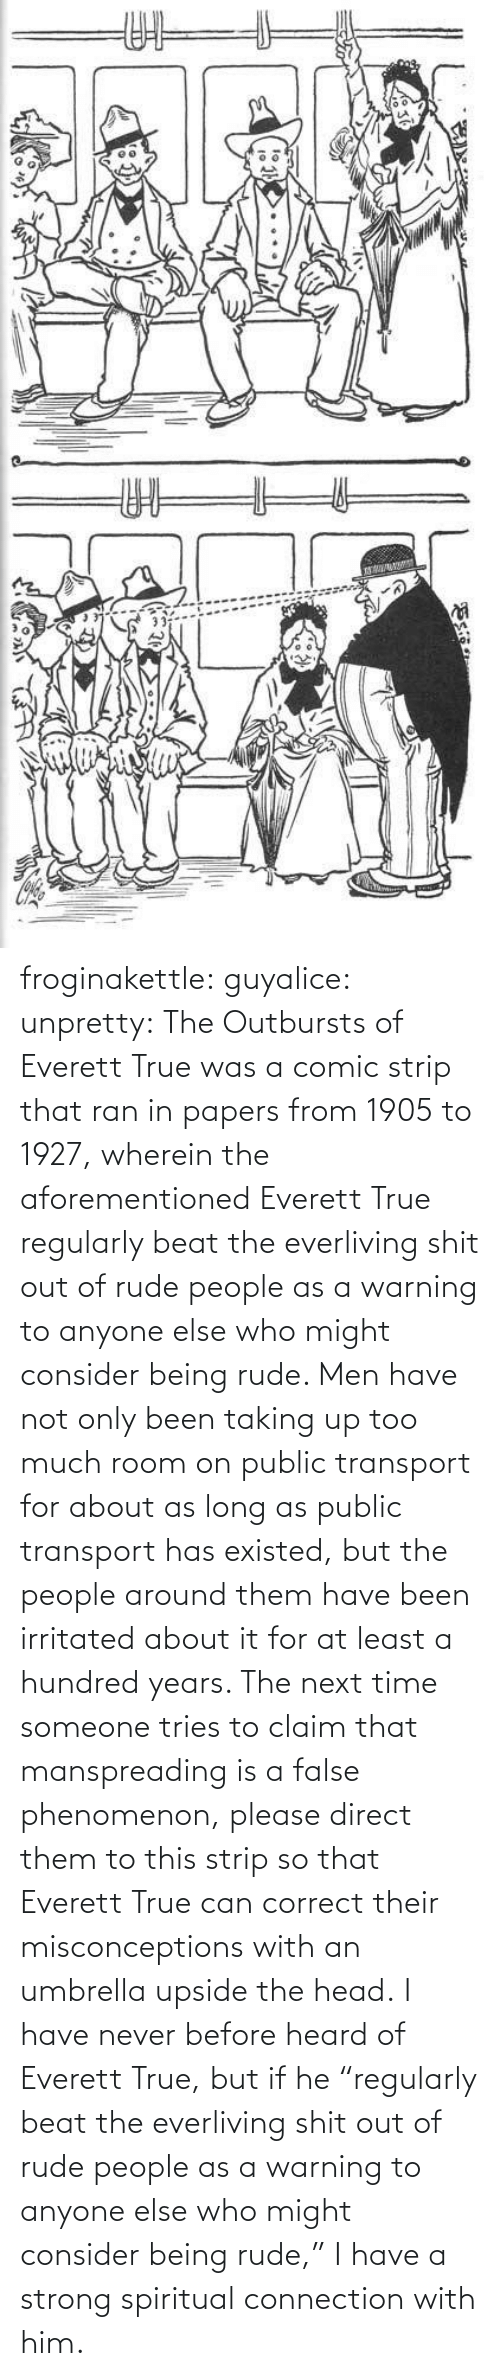 "Head, Rude, and Target: ఇ  క froginakettle:  guyalice:  unpretty:  The Outbursts of Everett True was a comic strip that ran in papers from 1905 to 1927, wherein the aforementioned Everett True regularly beat the everliving shit out of rude people as a warning to anyone else who might consider being rude. Men have not only been taking up too much room on public transport for about as long as public transport has existed, but the people around them have been irritated about it for at least a hundred years. The next time someone tries to claim that manspreading is a false phenomenon, please direct them to this strip so that Everett True can correct their misconceptions with an umbrella upside the head.  I have never before heard of Everett True, but if he ""regularly beat the everliving shit out of rude people as a warning to anyone else who might consider being rude,"" I have a strong spiritual connection with him."